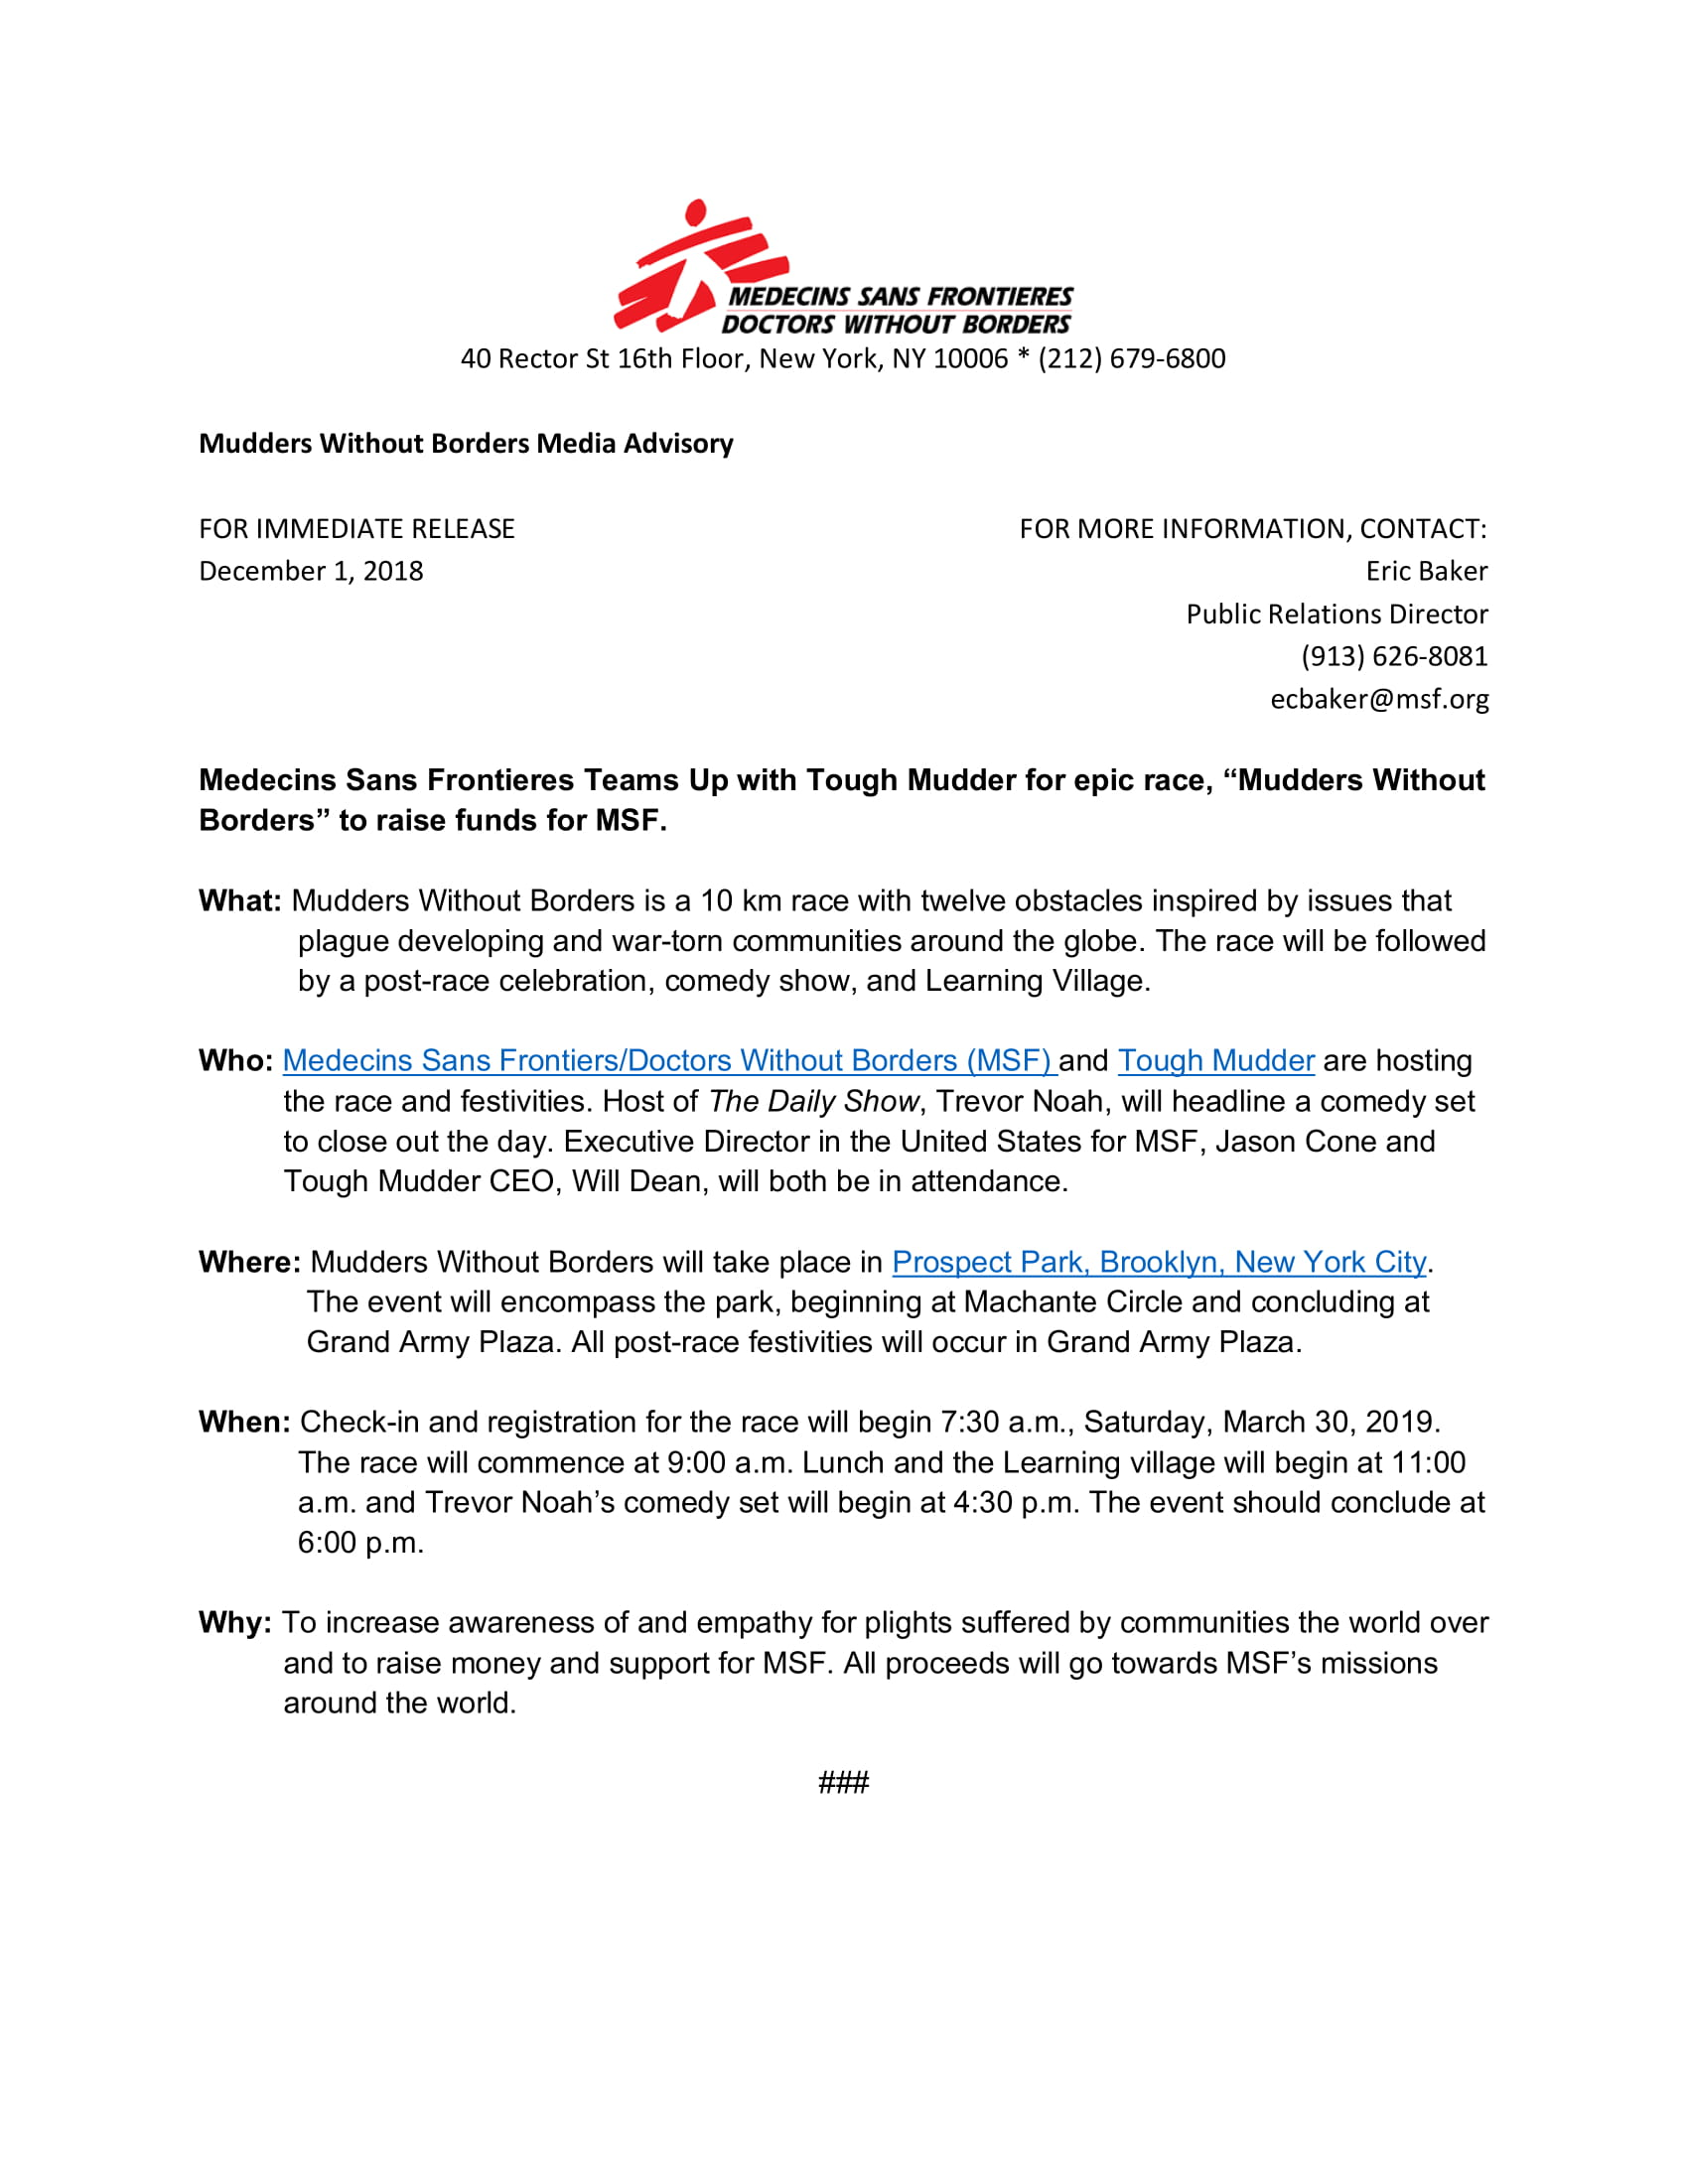 Mudders without borders media advisory